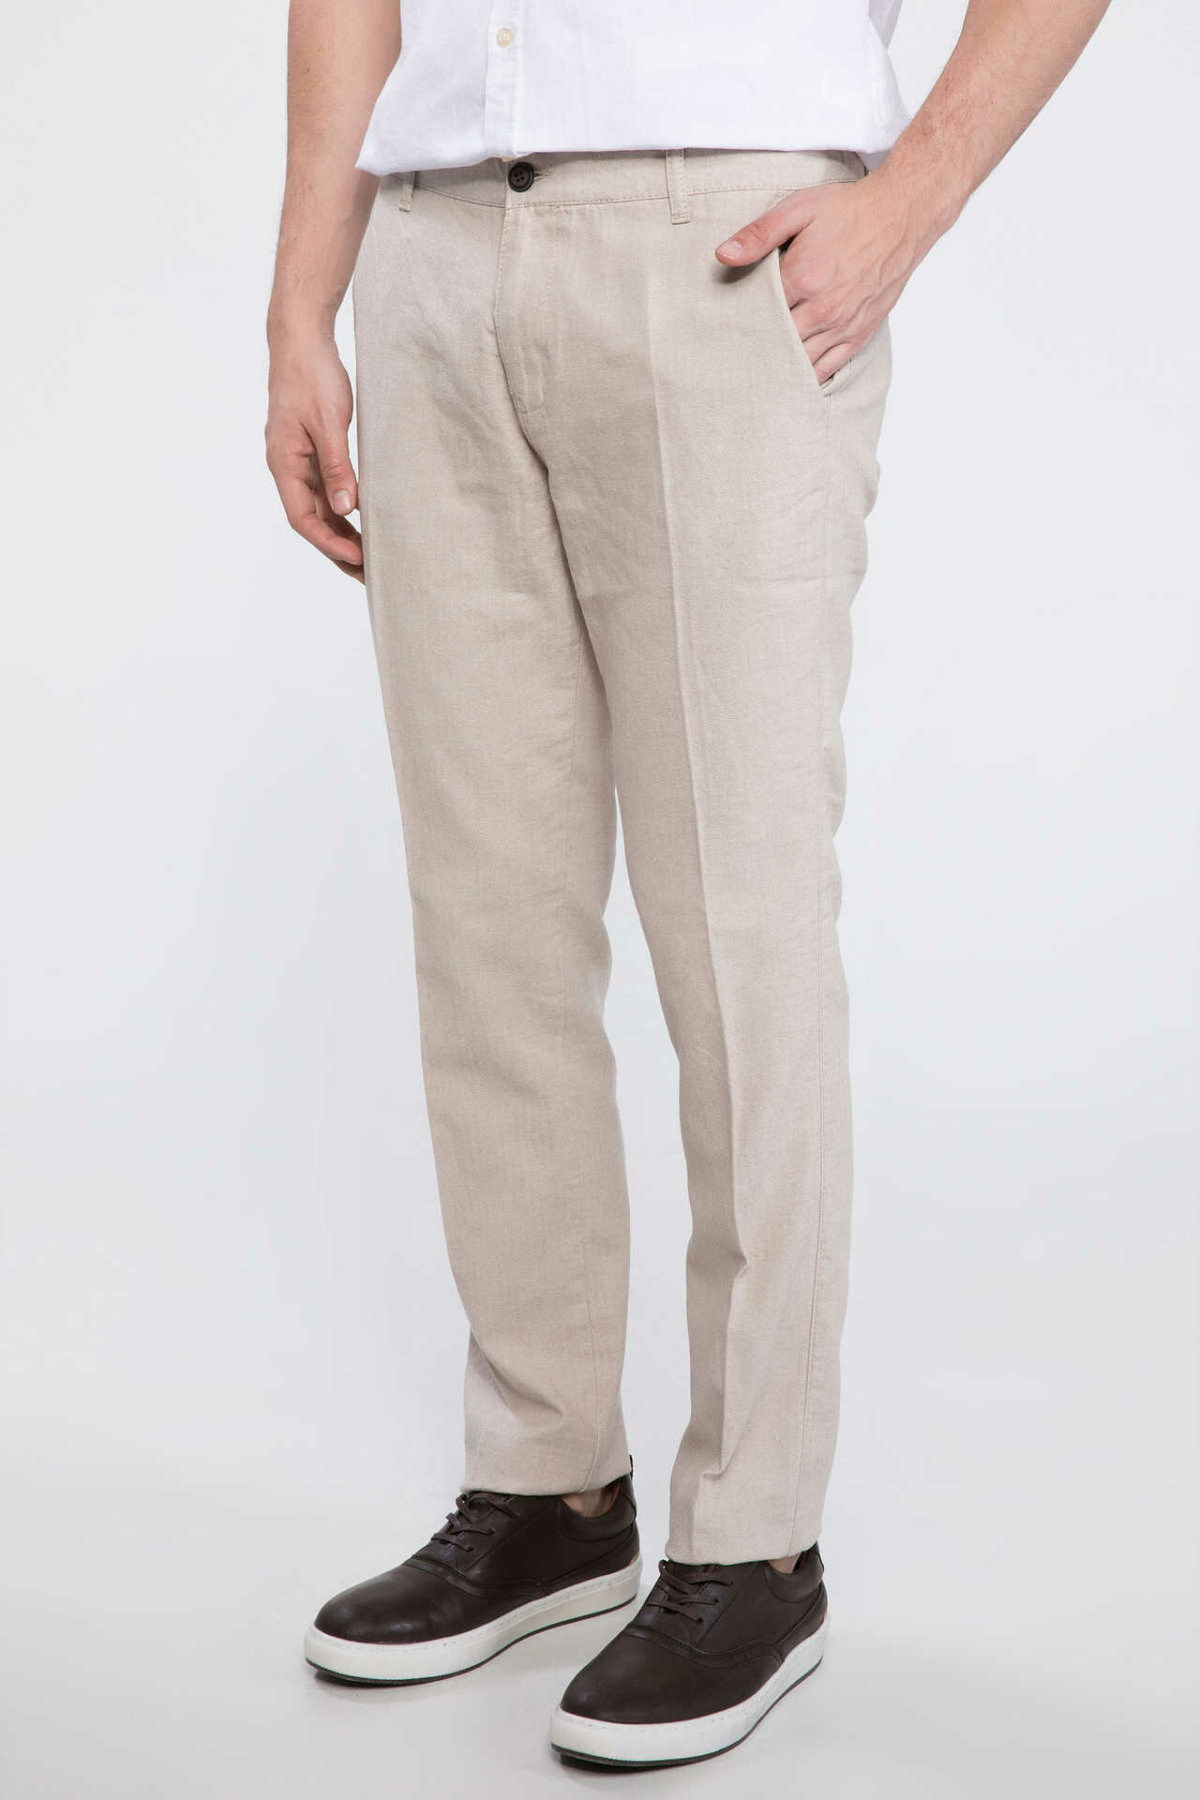 DeFacto Man Summer Smart Casual Beige Long Pants Trousers Men Straight Cargo Pants Male Bottoms-I7739AZ18SM